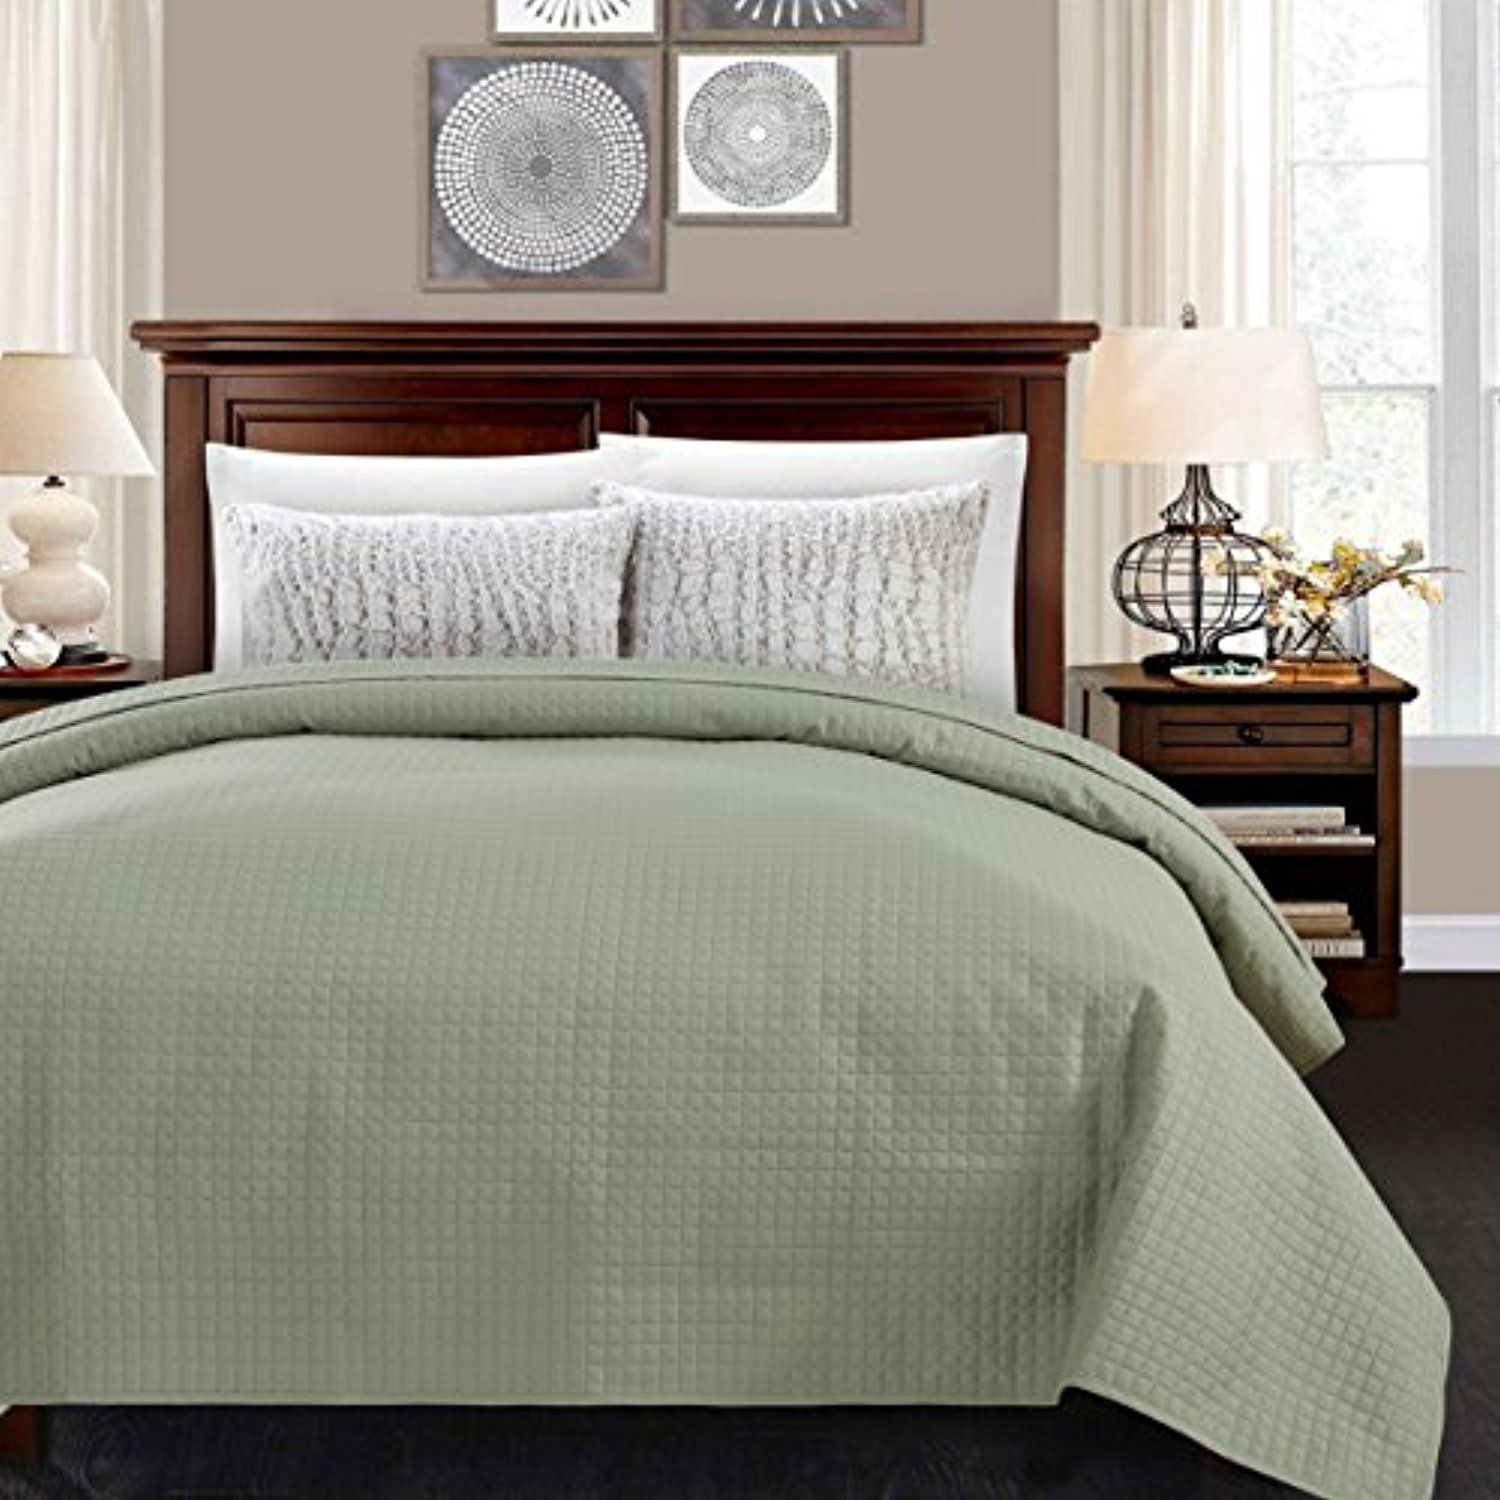 Alpha Home Quilted Bed Quilt Light Weight Luxury Checkered Pattern Bed Cover Bedspread Coverlet Sage Full Coverlet Bedding Lightweight Bedding Quilt Bedding